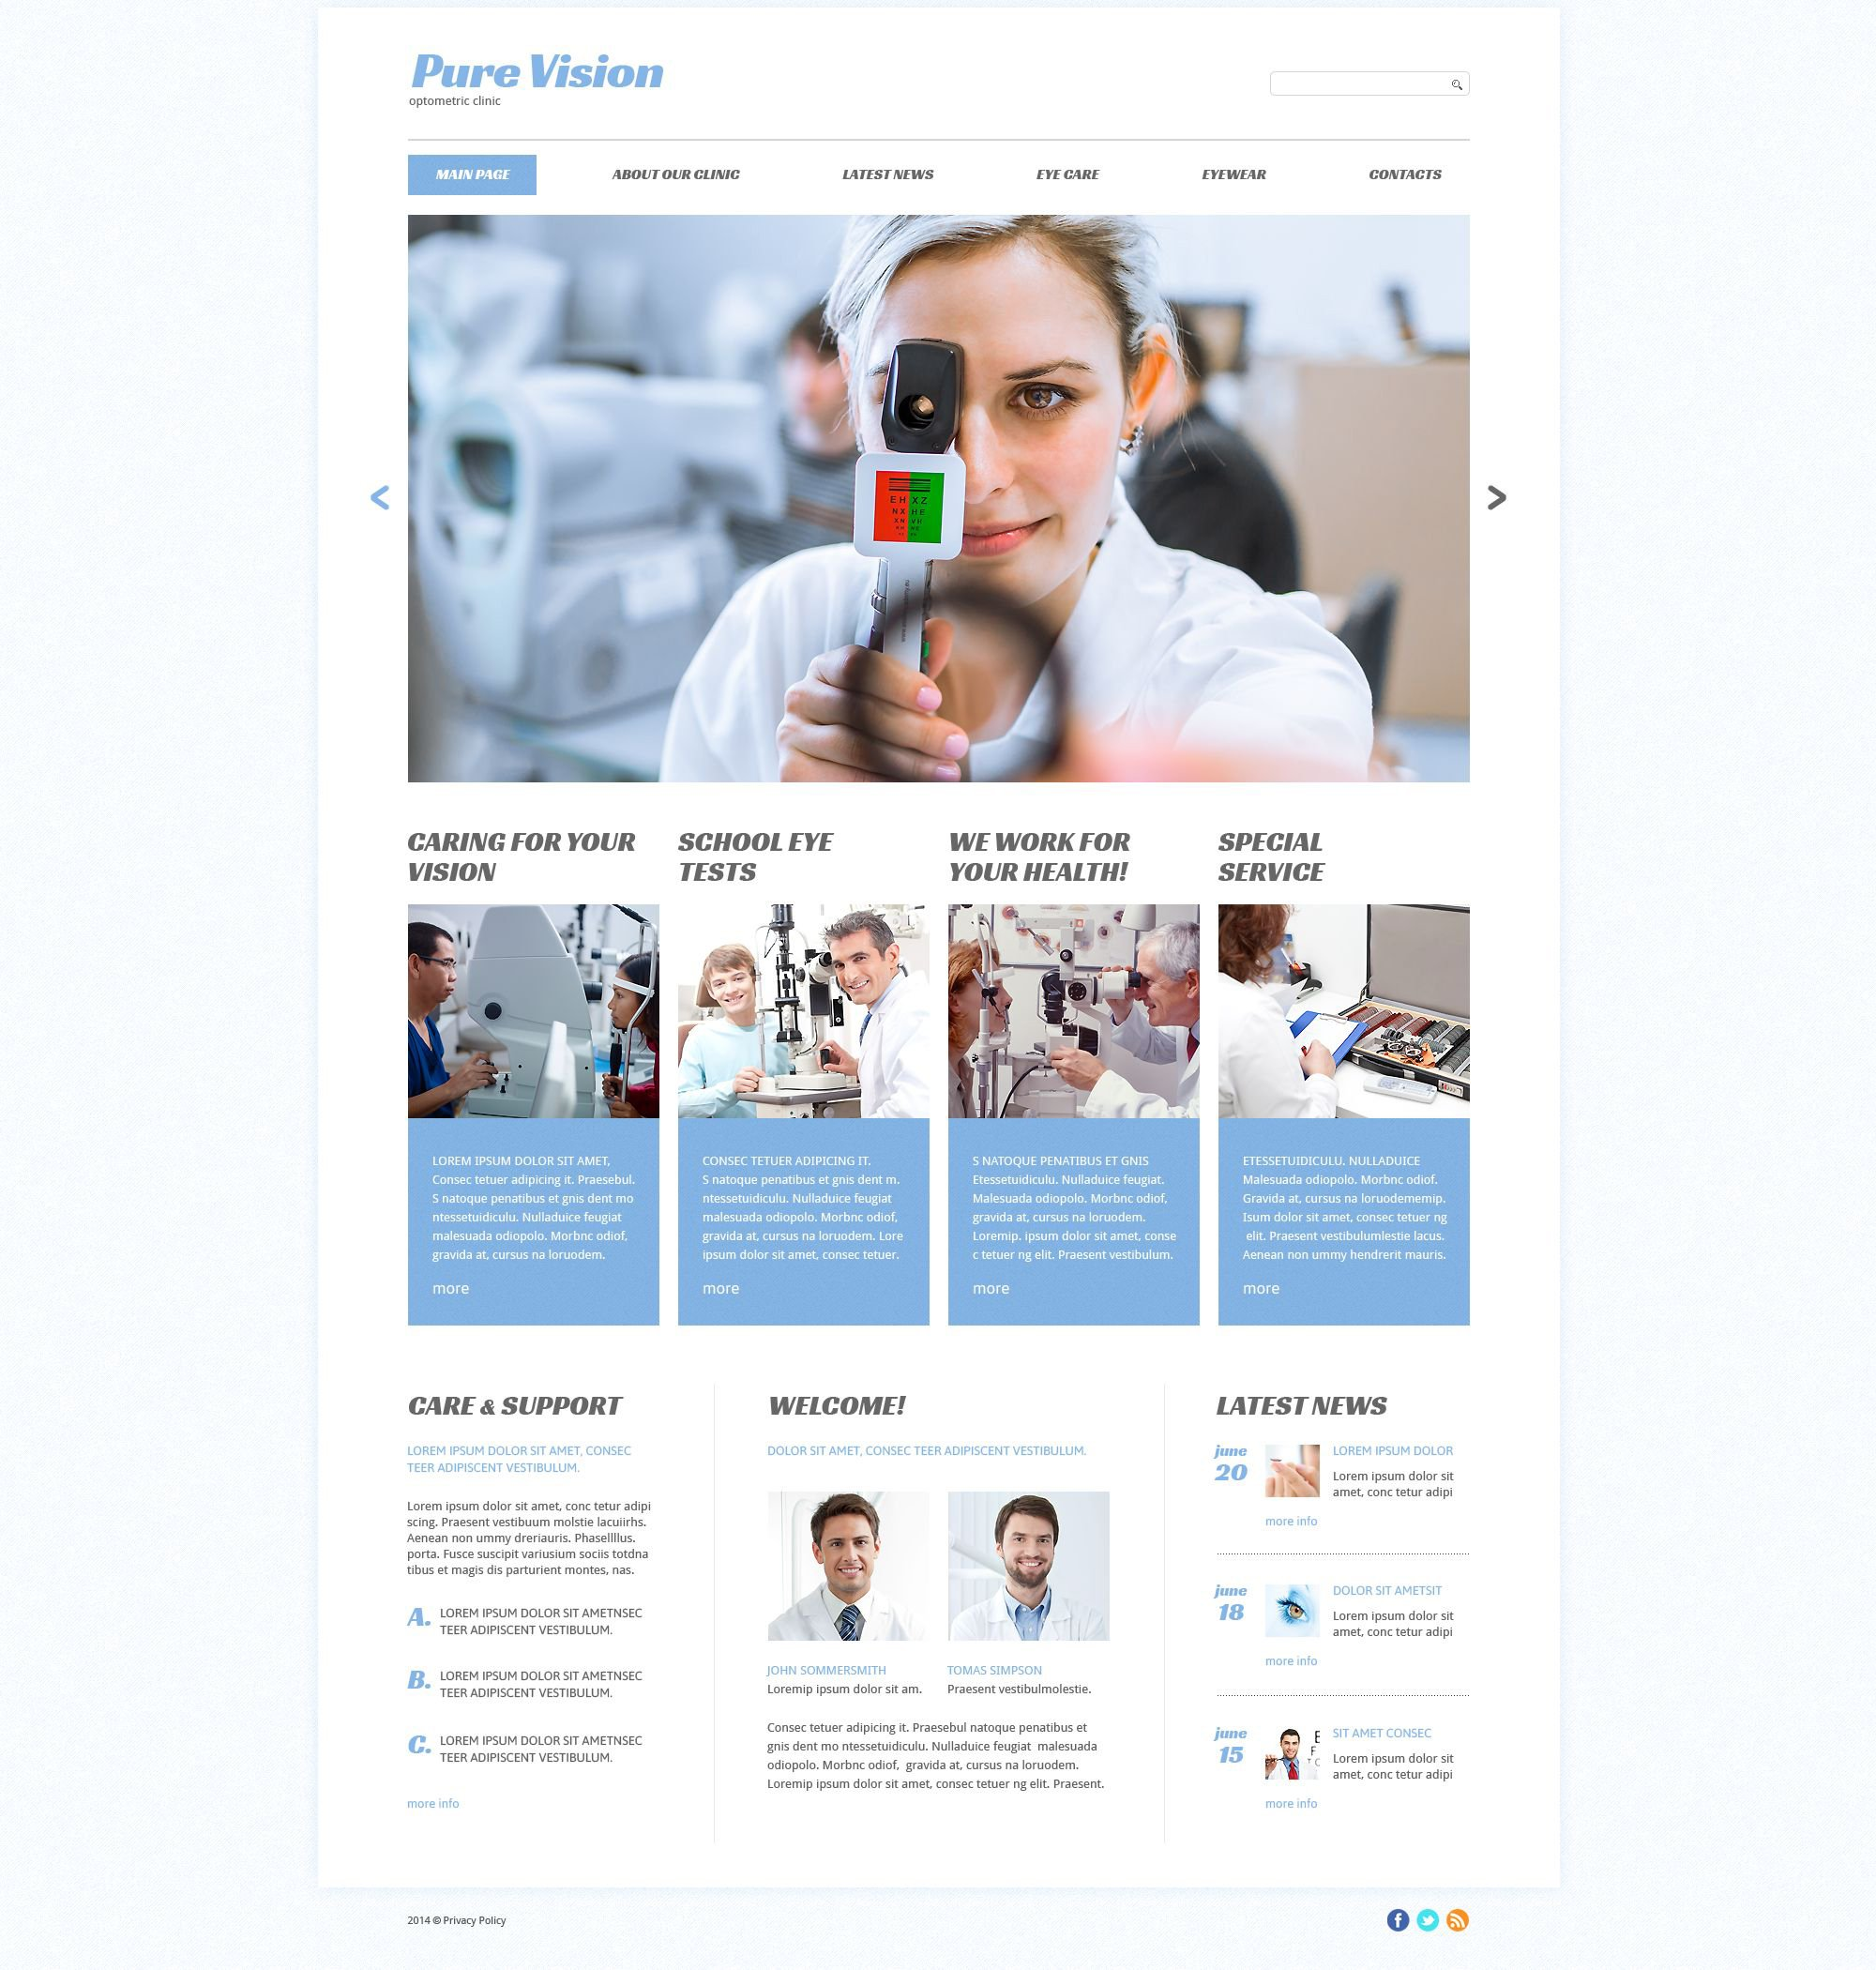 The Pure Vision Responsive Javascript Animated Design 53414, one of the best website templates of its kind (medical, most popular), also known as pure vision website template, optometrists website template, optometrist website template, optometric website template, crystal website template, eyes website template, sight website template, vision website template, medicine center clinic website template, eye care website template, lenses website template, glasses website template, laser website template, correction website template, ophthalmology website template, disease website template, surgery website template, glaucoma website template, oculoplastic surgery website template, cataract and related with pure vision, optometrists, optometrist, optometric, crystal, eyes, sight, vision, medicine center clinic, eye care, lenses, glasses, laser, correction, ophthalmology, disease, surgery, glaucoma, oculoplastic surgery, cataract, etc.